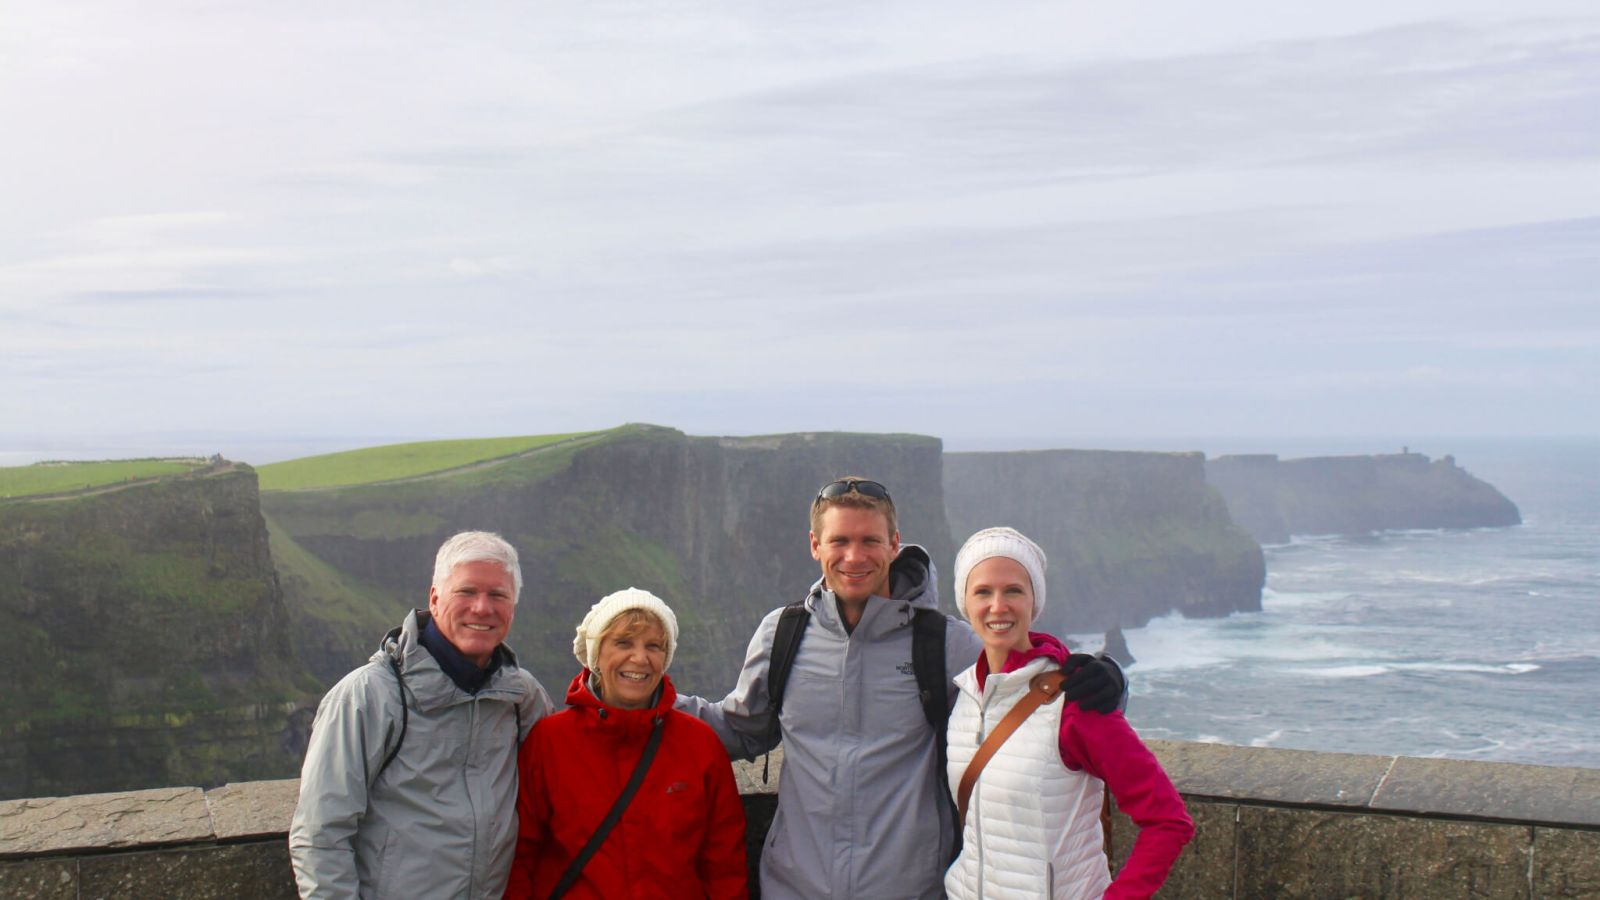 Gwen, M, and M's parents in front of the Cliffs of Moher